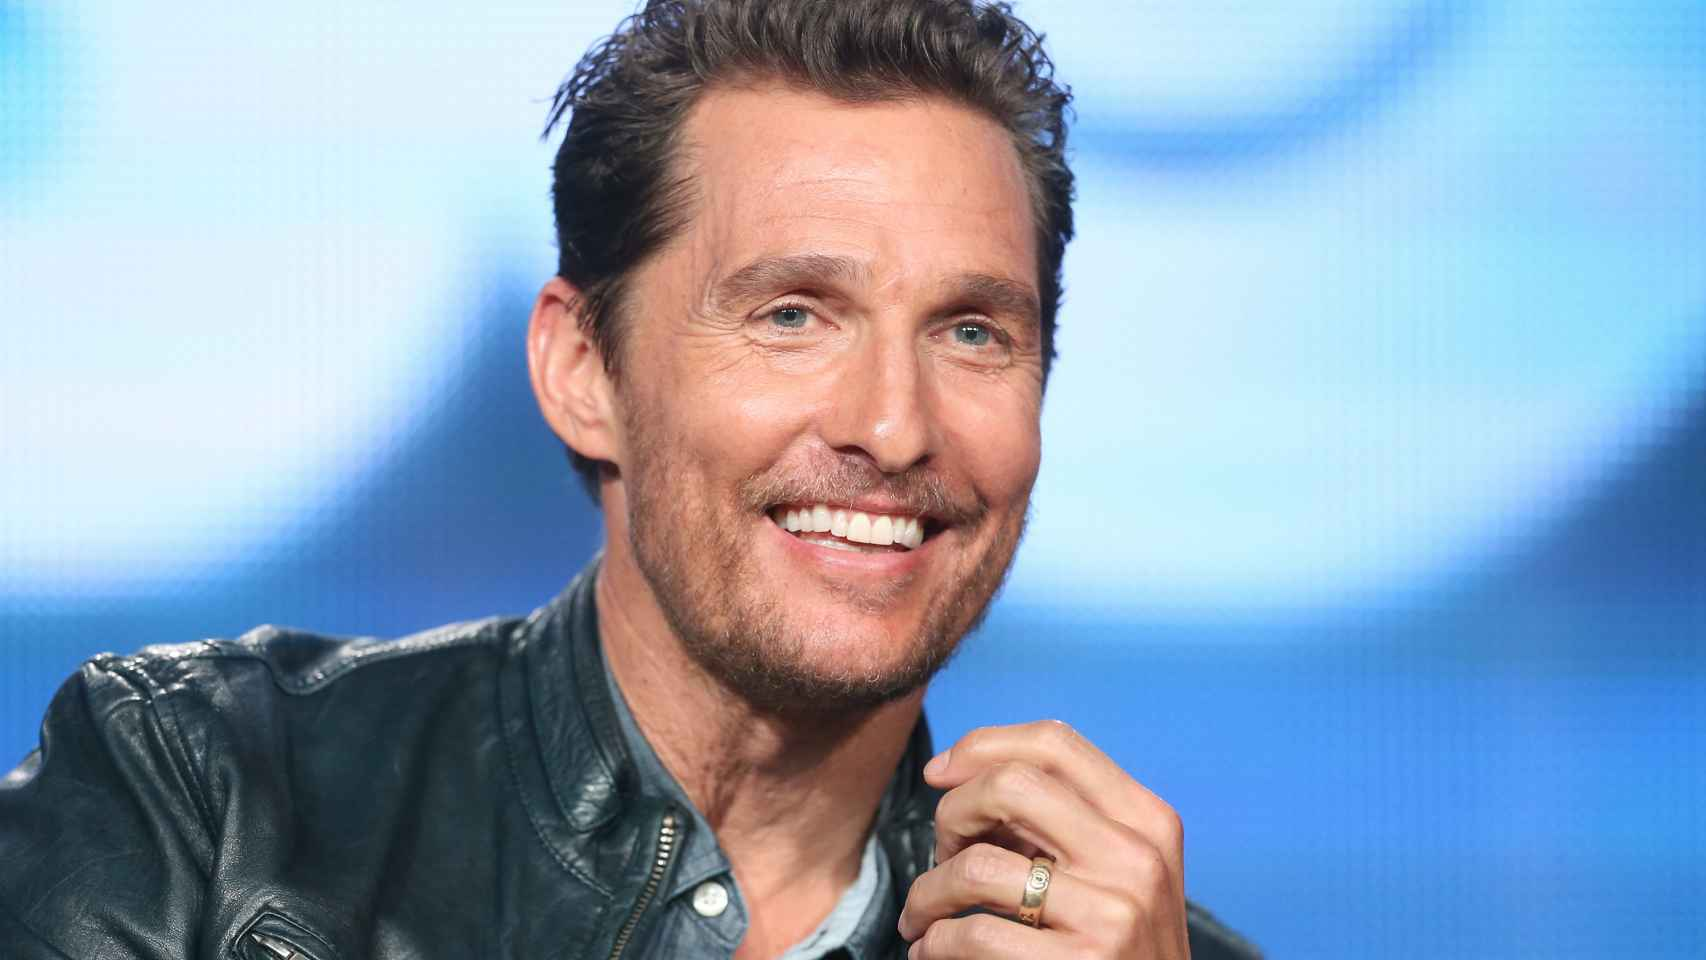 El actor estadounidense Matthew Mcconaughey. Getty Images